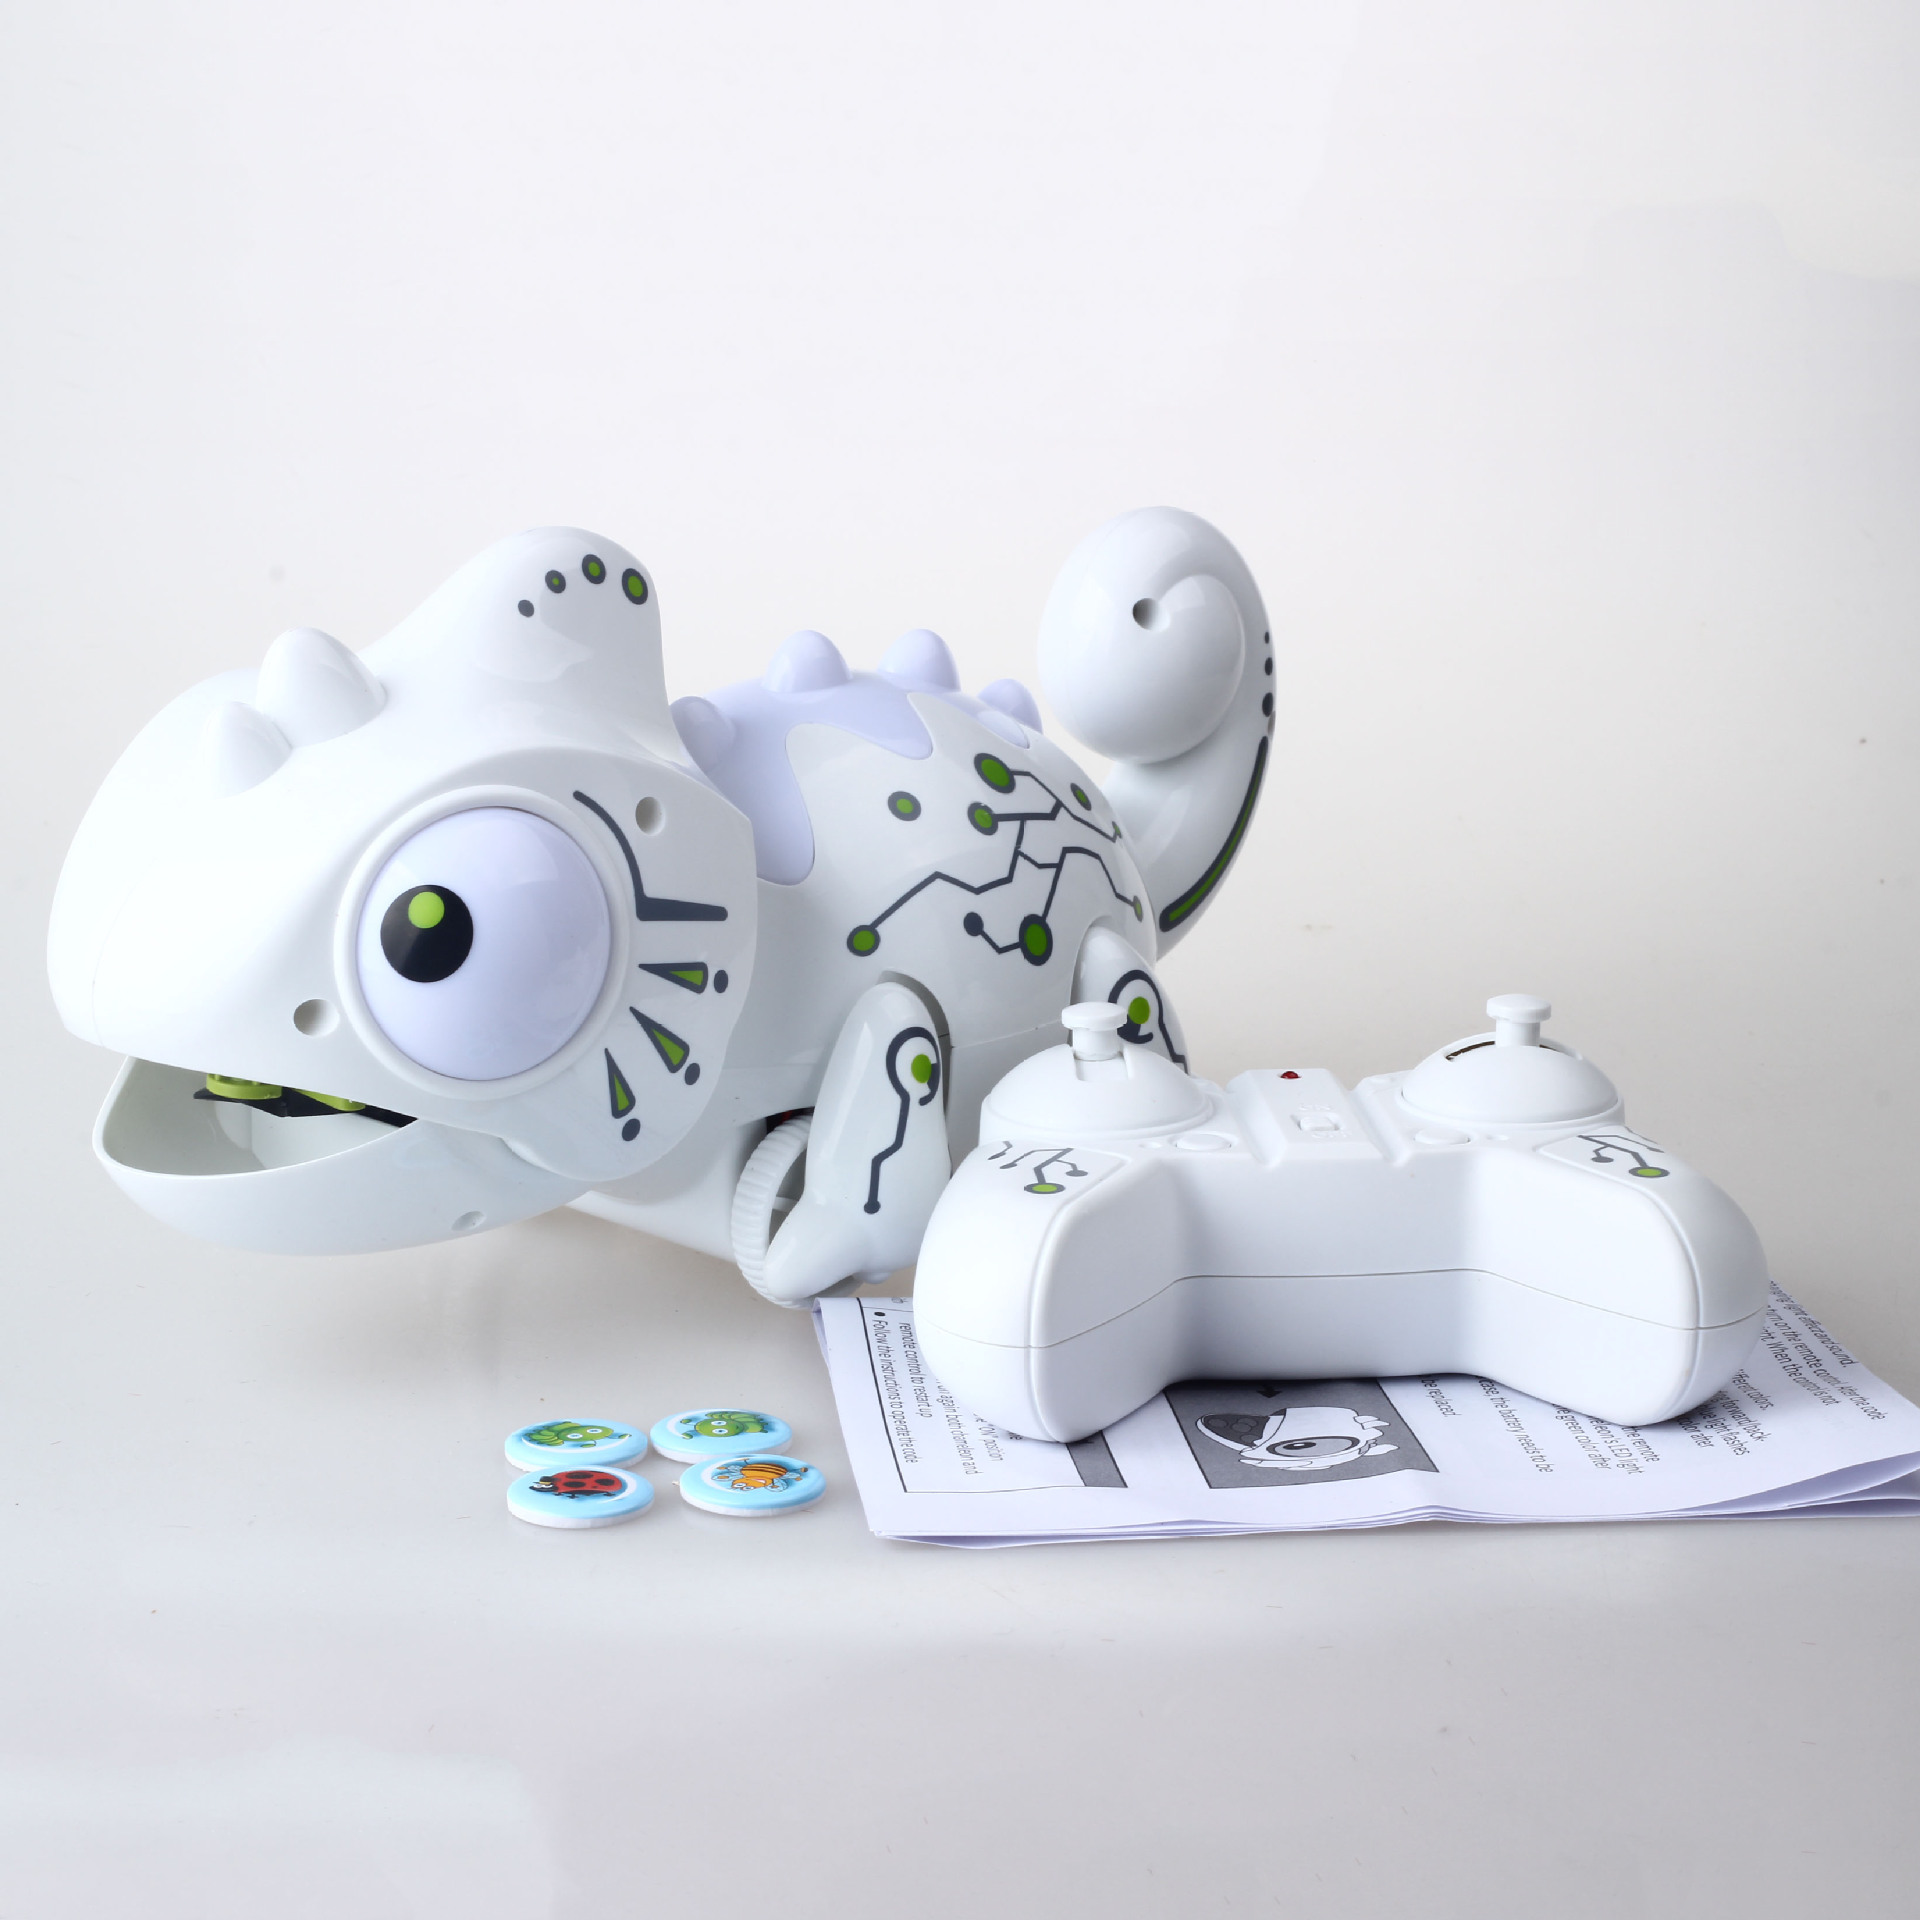 RC Chameleon Lizard Pet 2.4 G Intelligent Toy Robot For Children Kids Birthday Gift Funny Toys Remote Control Reptile Animals 5